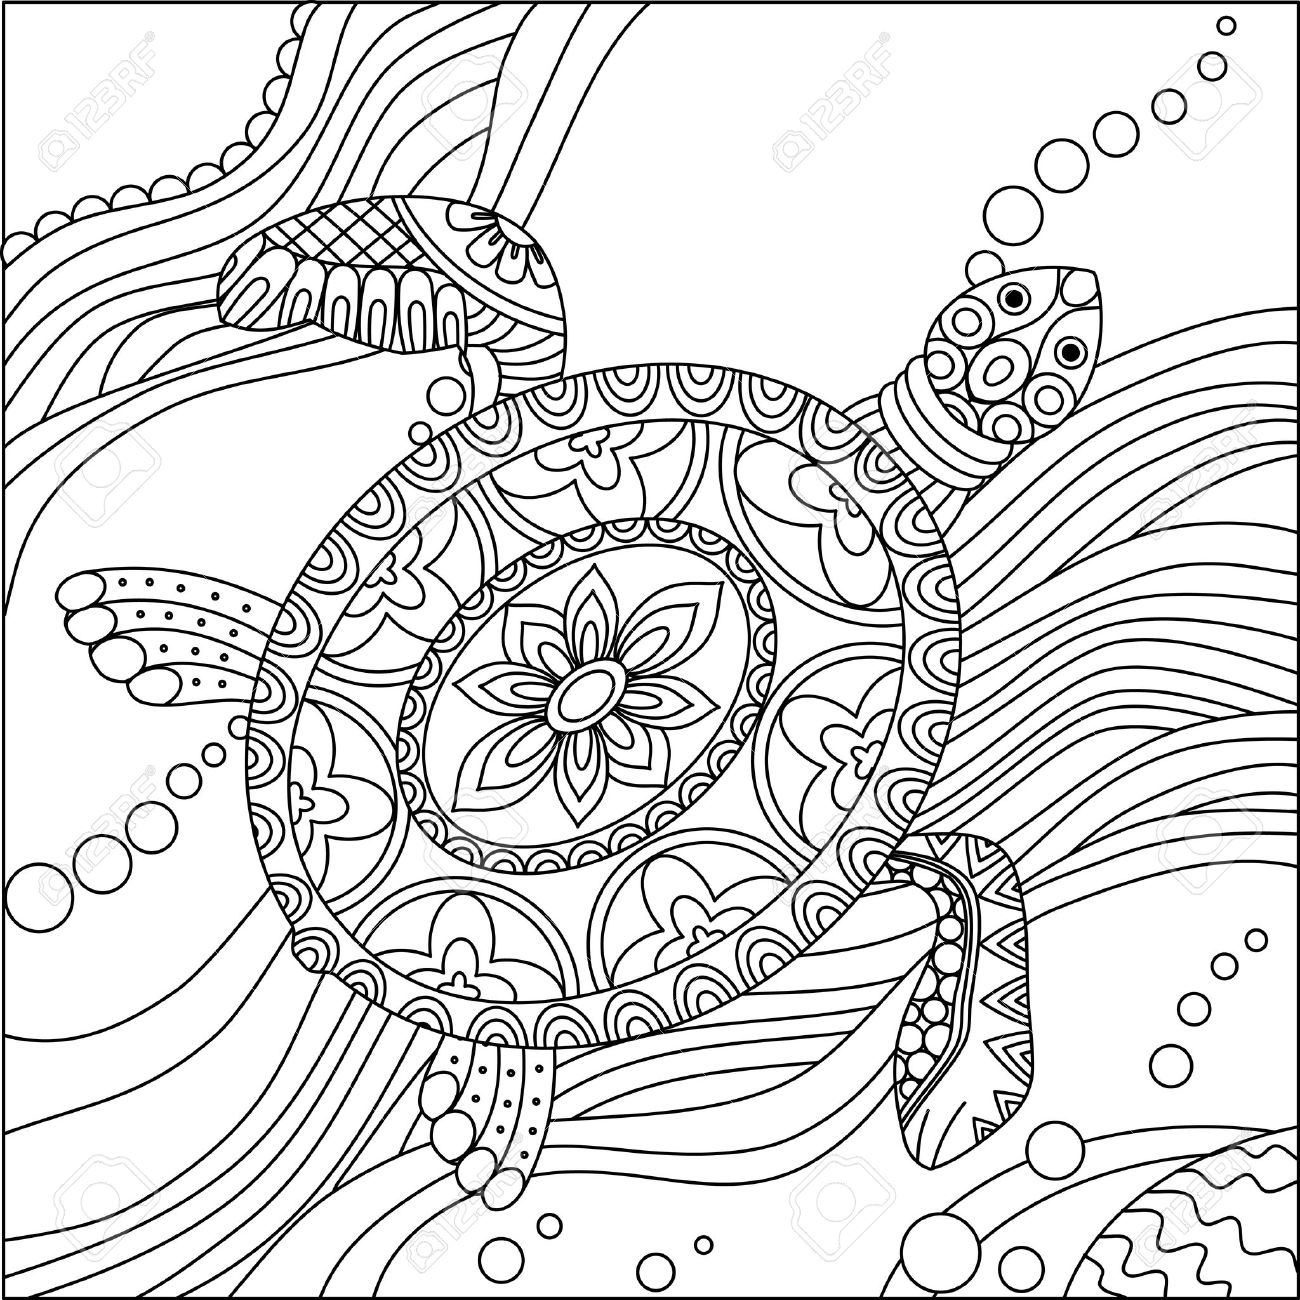 1300x1300 Fresh Sea Turtle Doodle Hand Drawn Vector Illustration Coloring